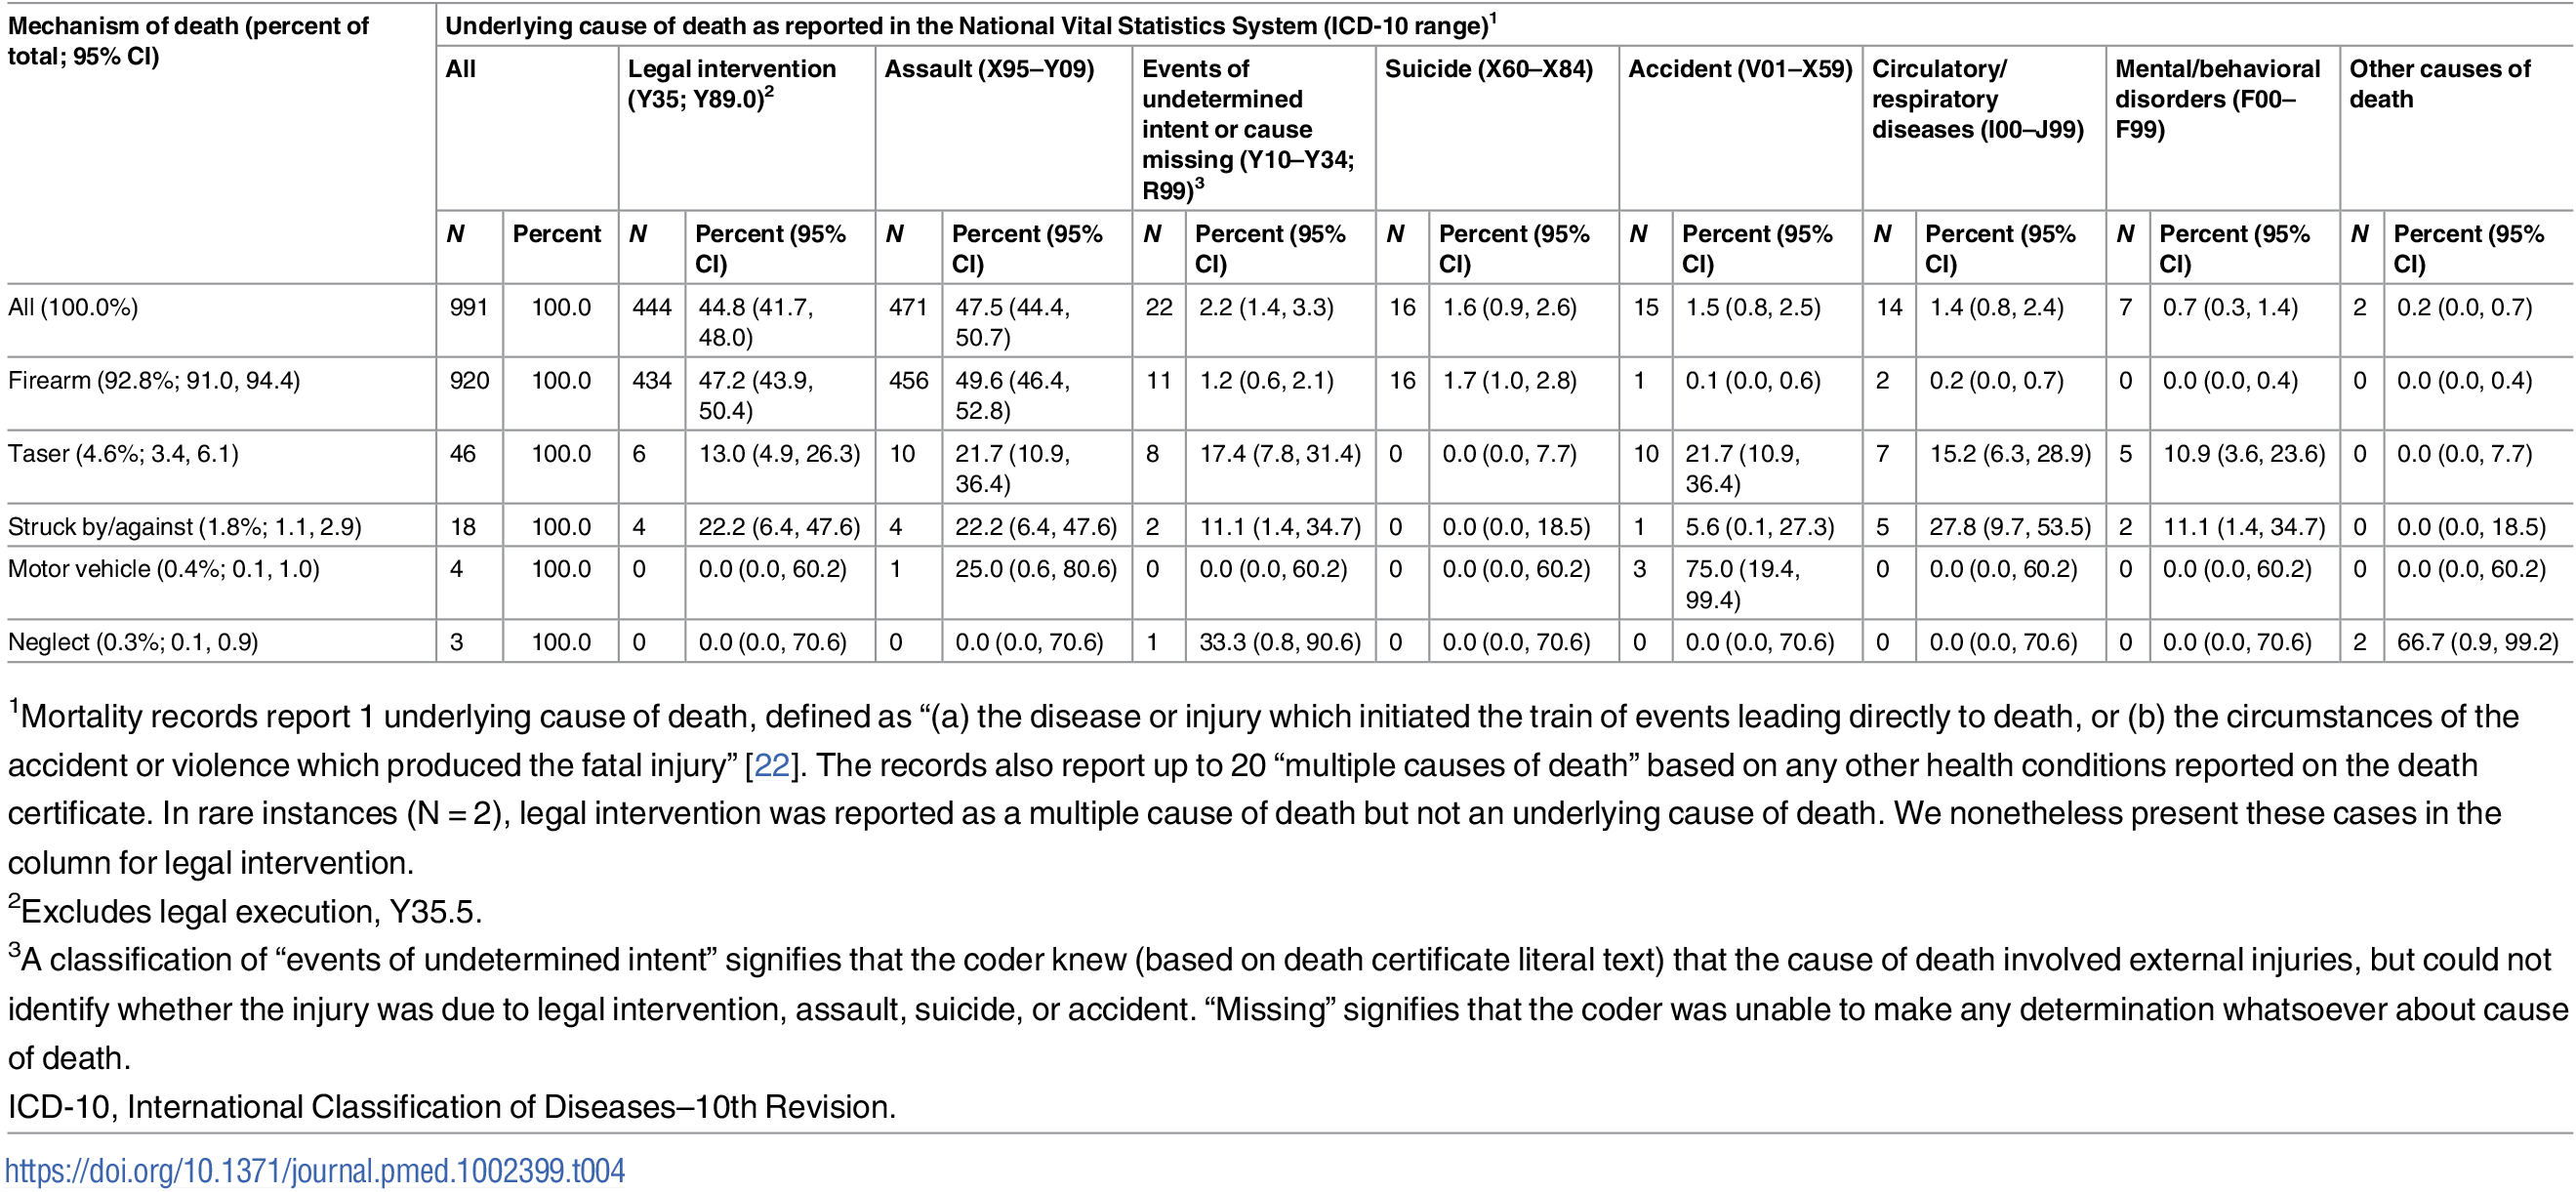 National Vital Statistics System cause of death codes, by mechanism of death, for law-enforcement-related deaths matched to The Counted.